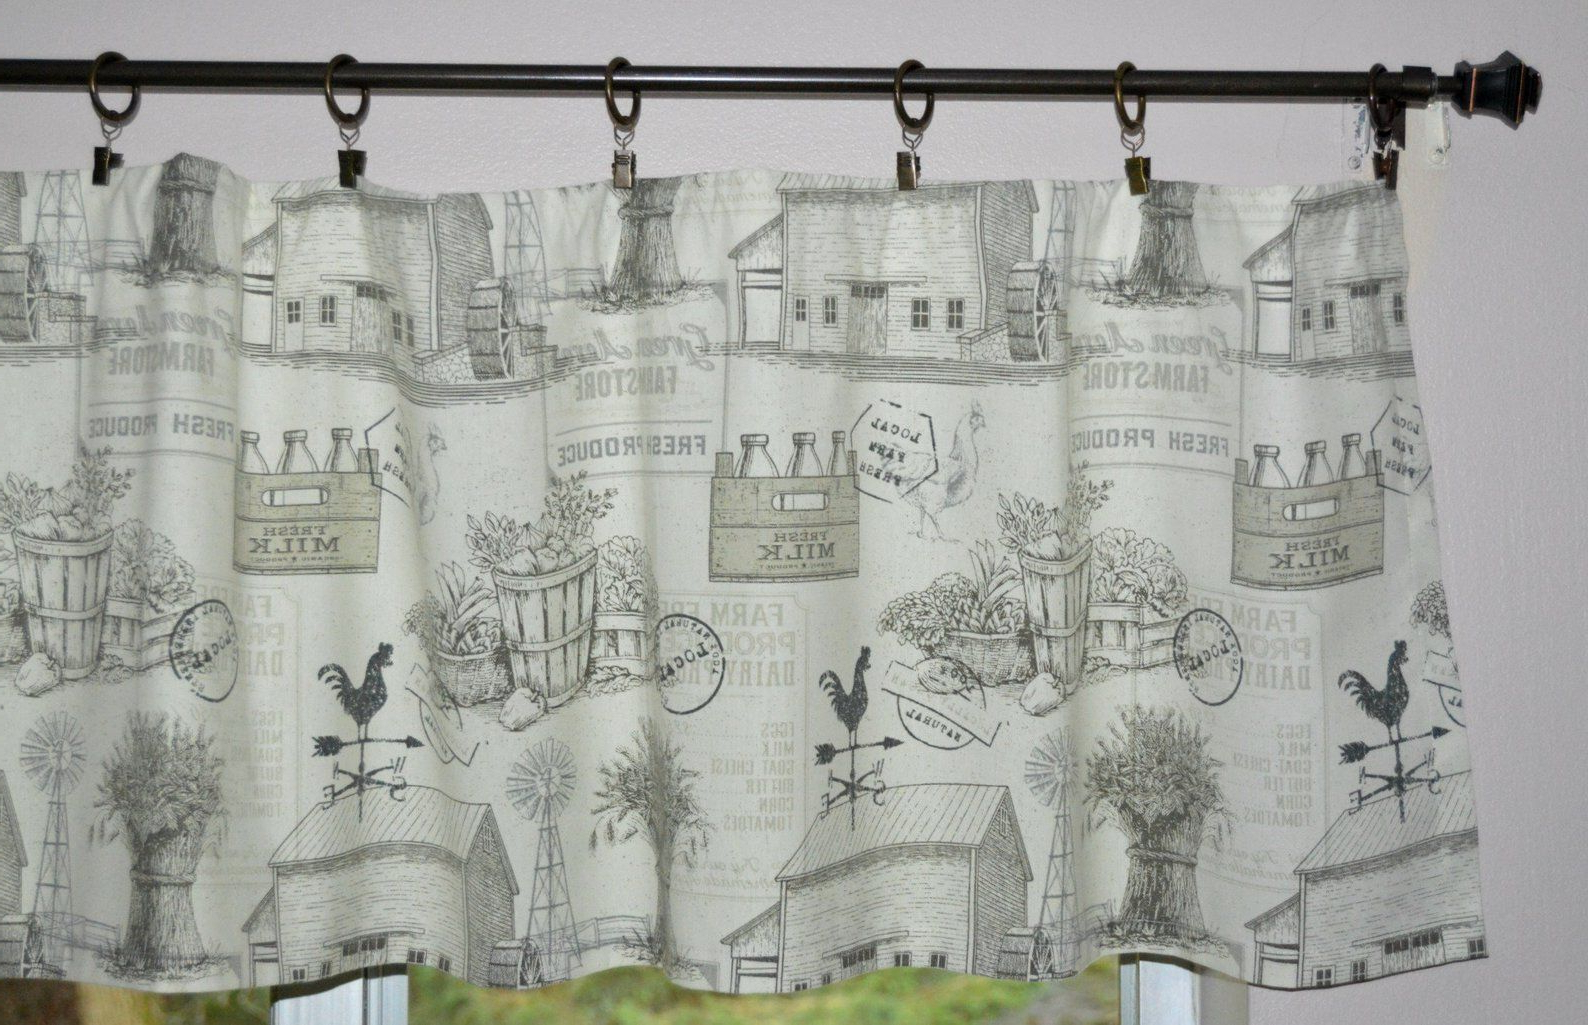 Barnyard Buffalo Check Rooster Window Valances In Recent Farmhouse Valance . Farm Toile Rooster Valance (View 12 of 20)